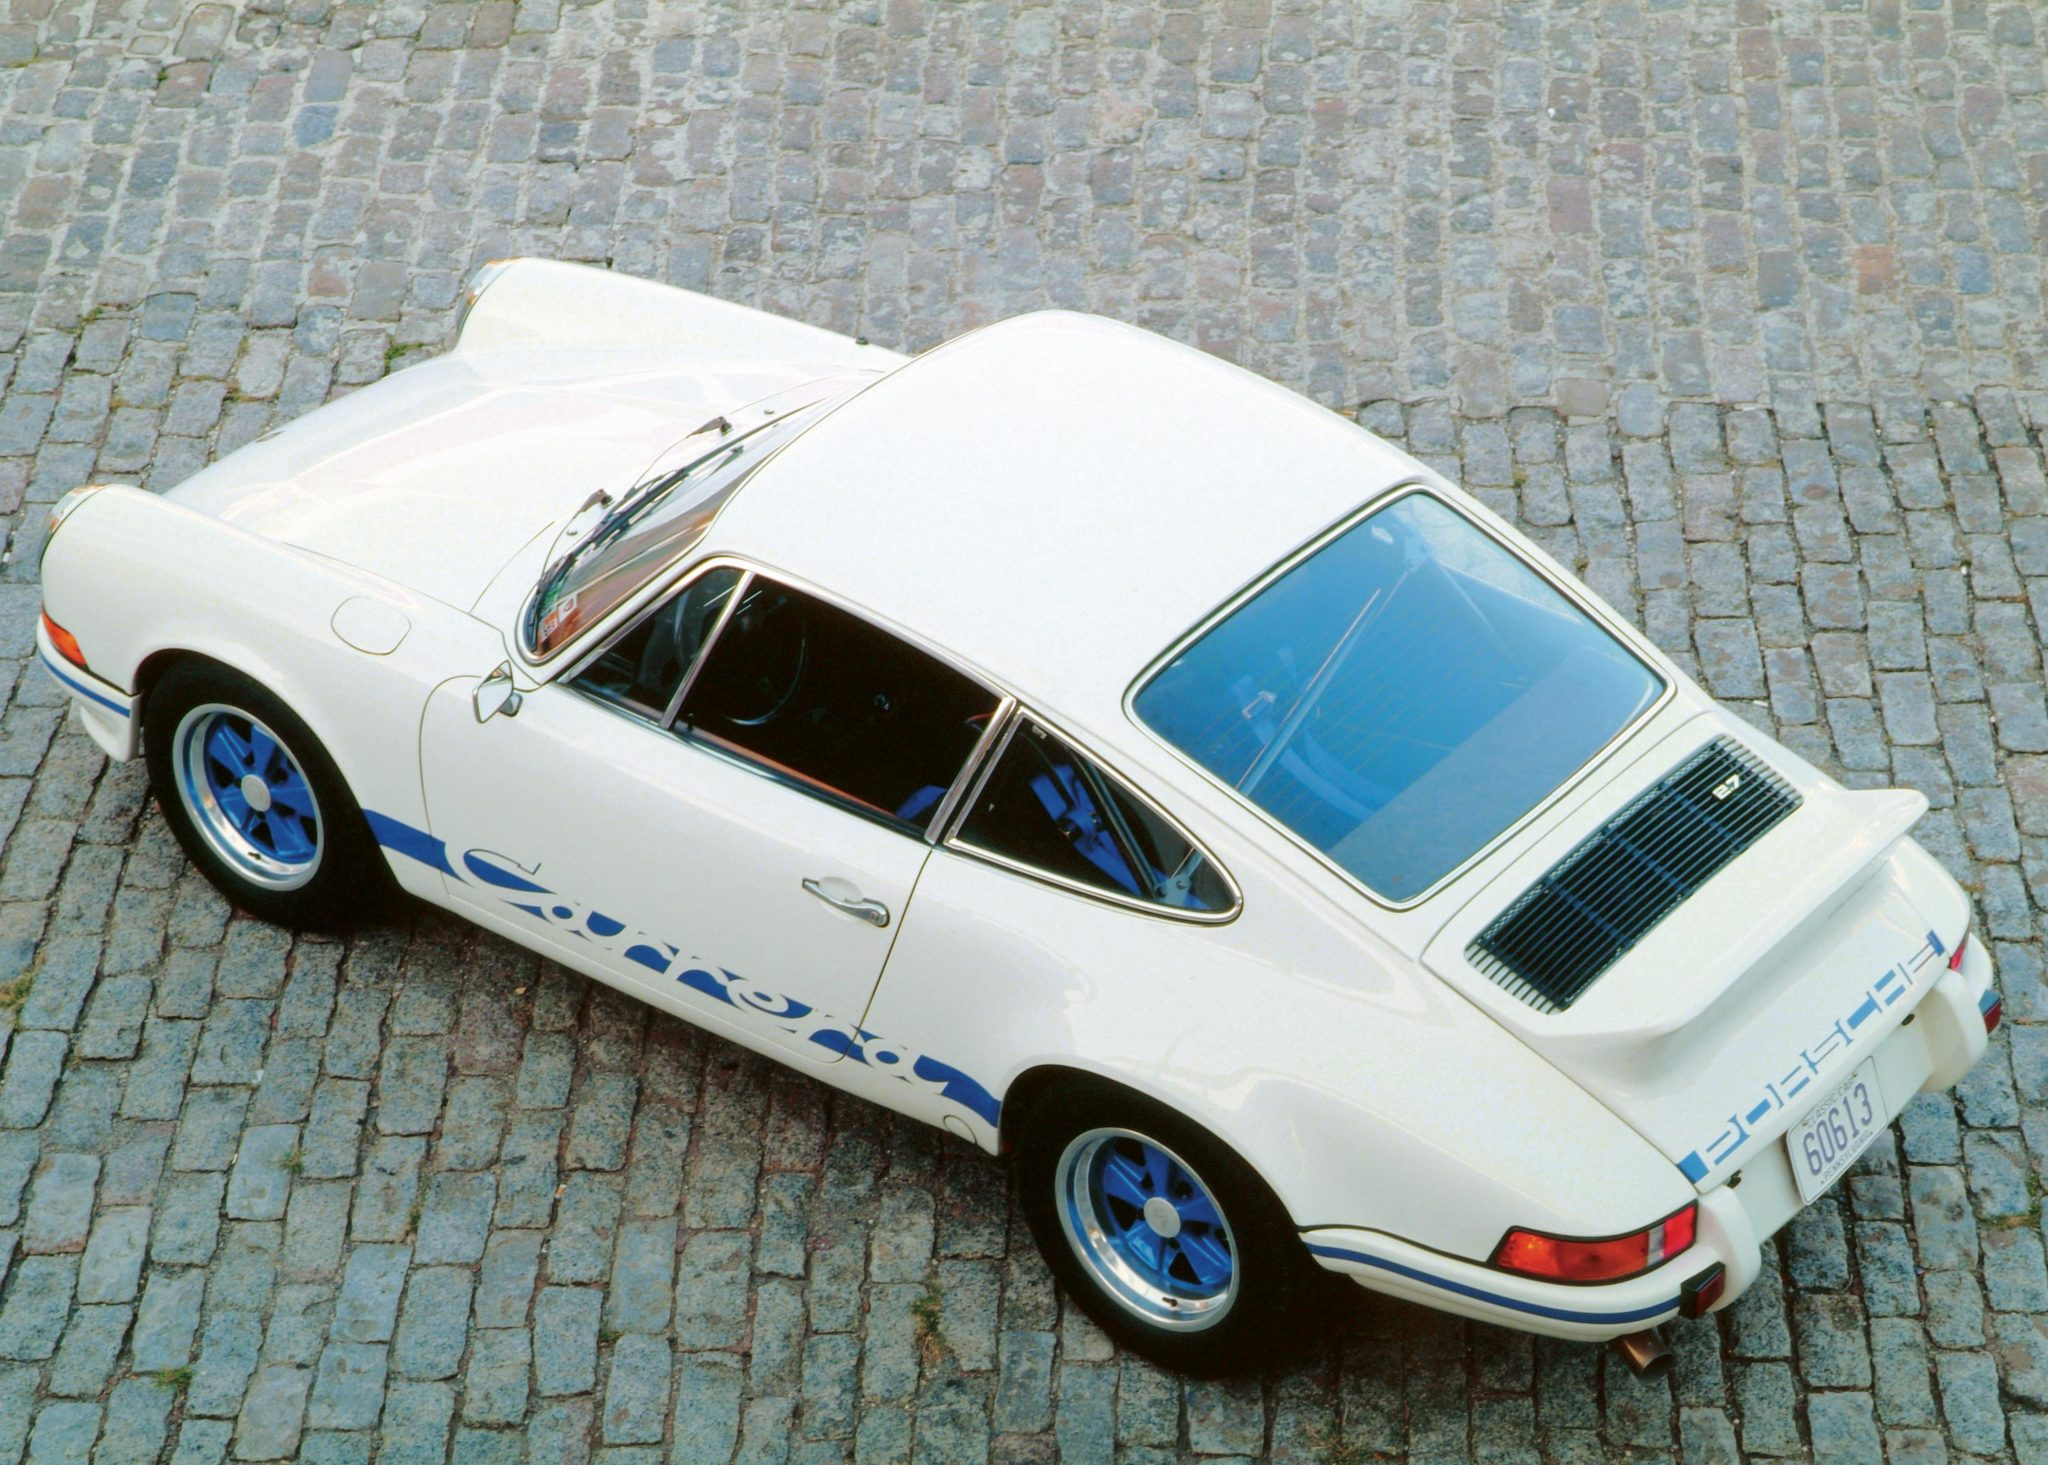 1973 porsche carrera rs 27 the ultimate classic 911 heacock note the porsche name painted across the decklid the elevated view also shows the angle of the ducks tail or brzel the spoiler greatly reduced vanachro Choice Image